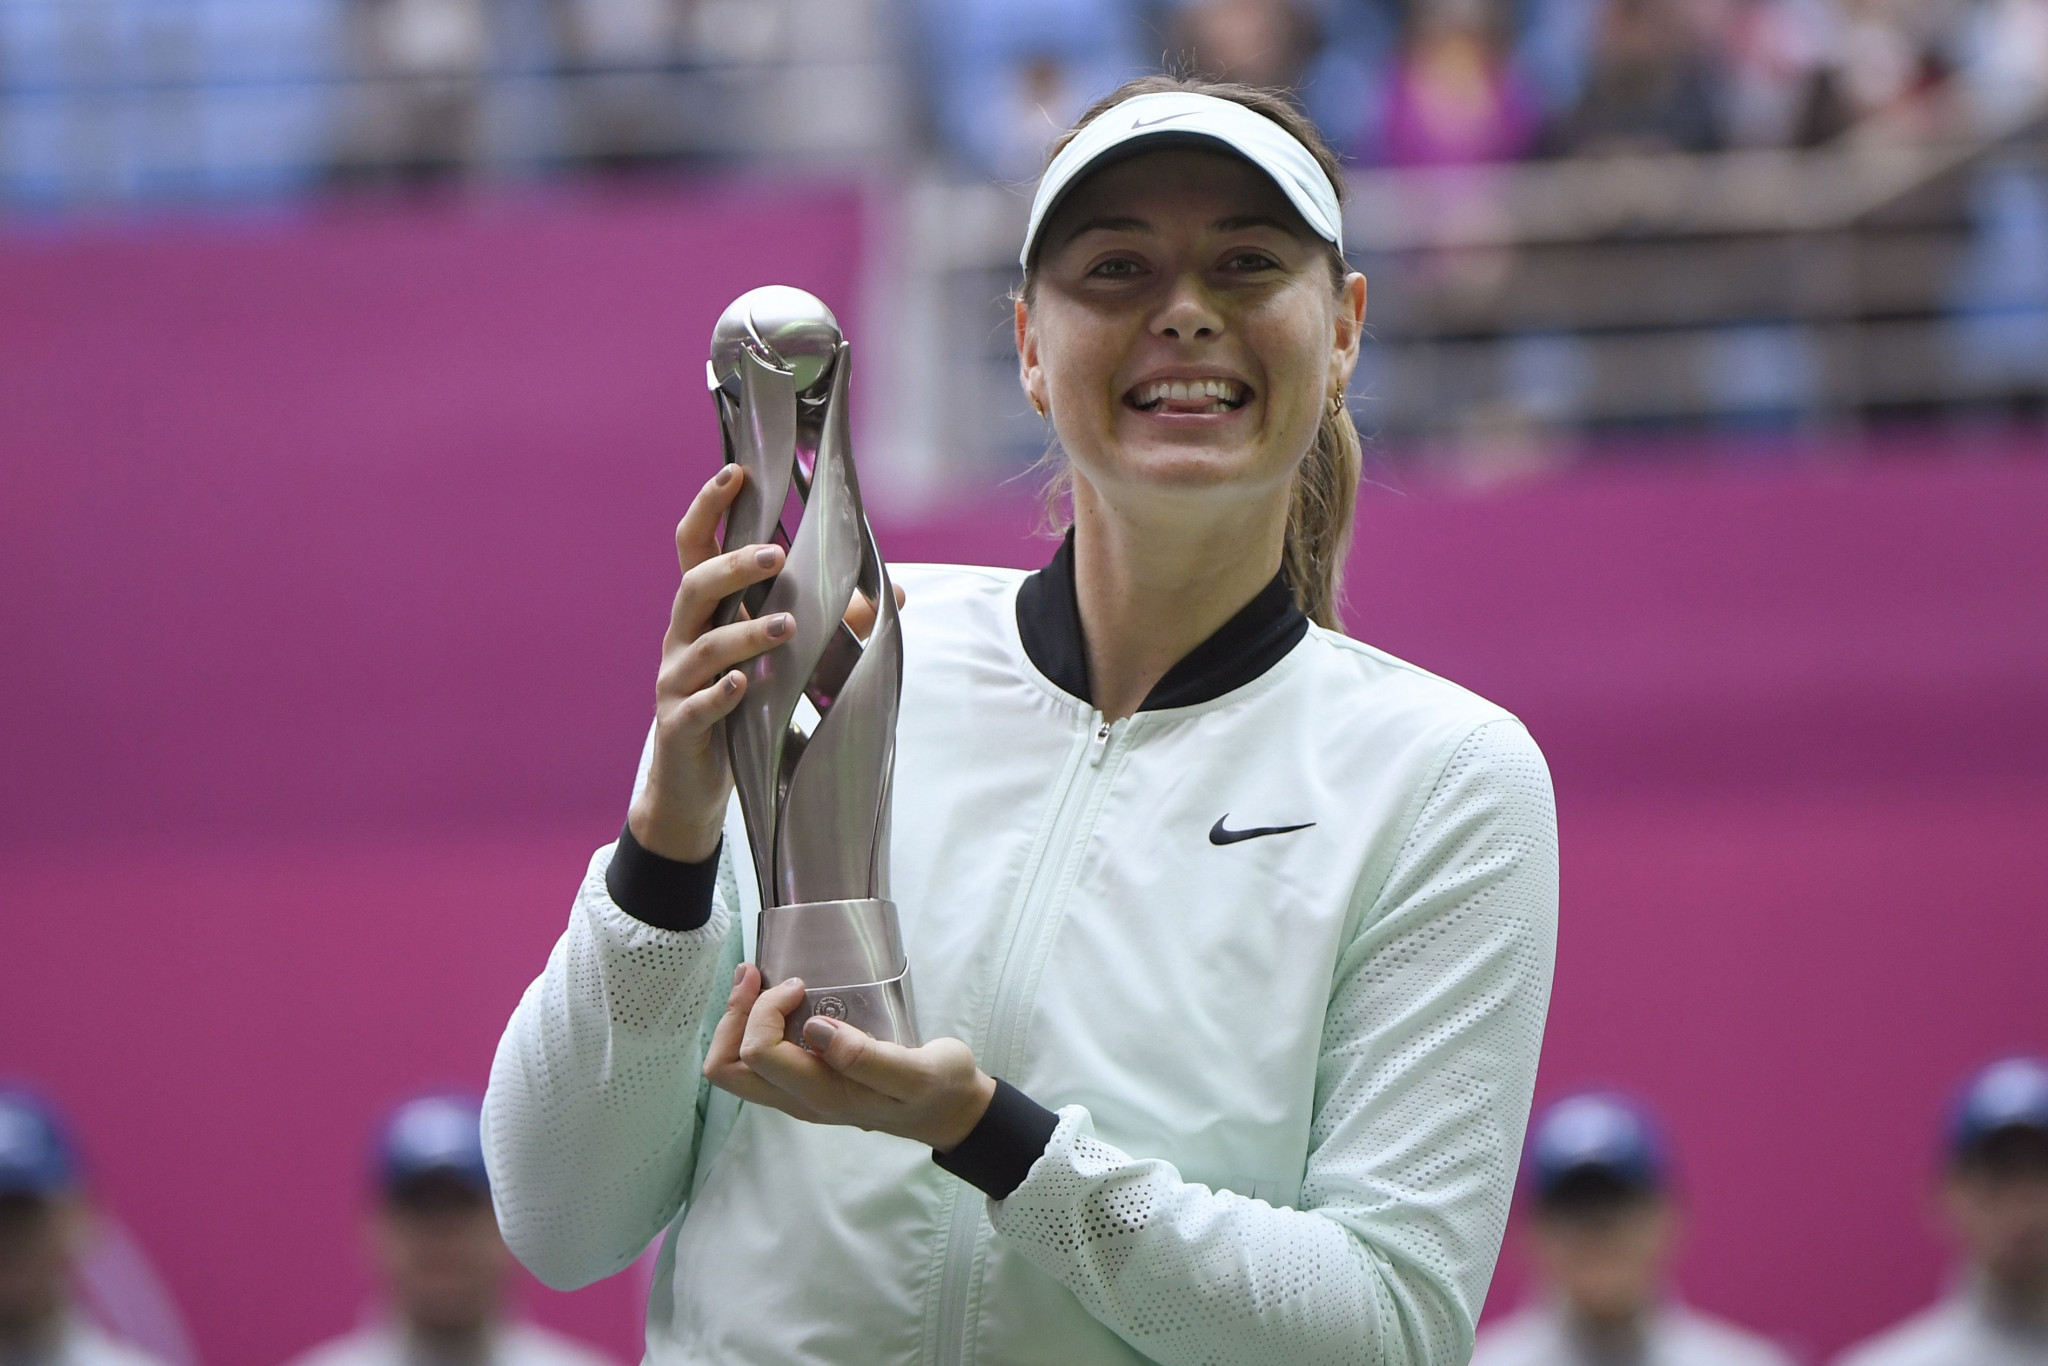 Maria Sharapova has won her first title since May 2015 ©Getty Images